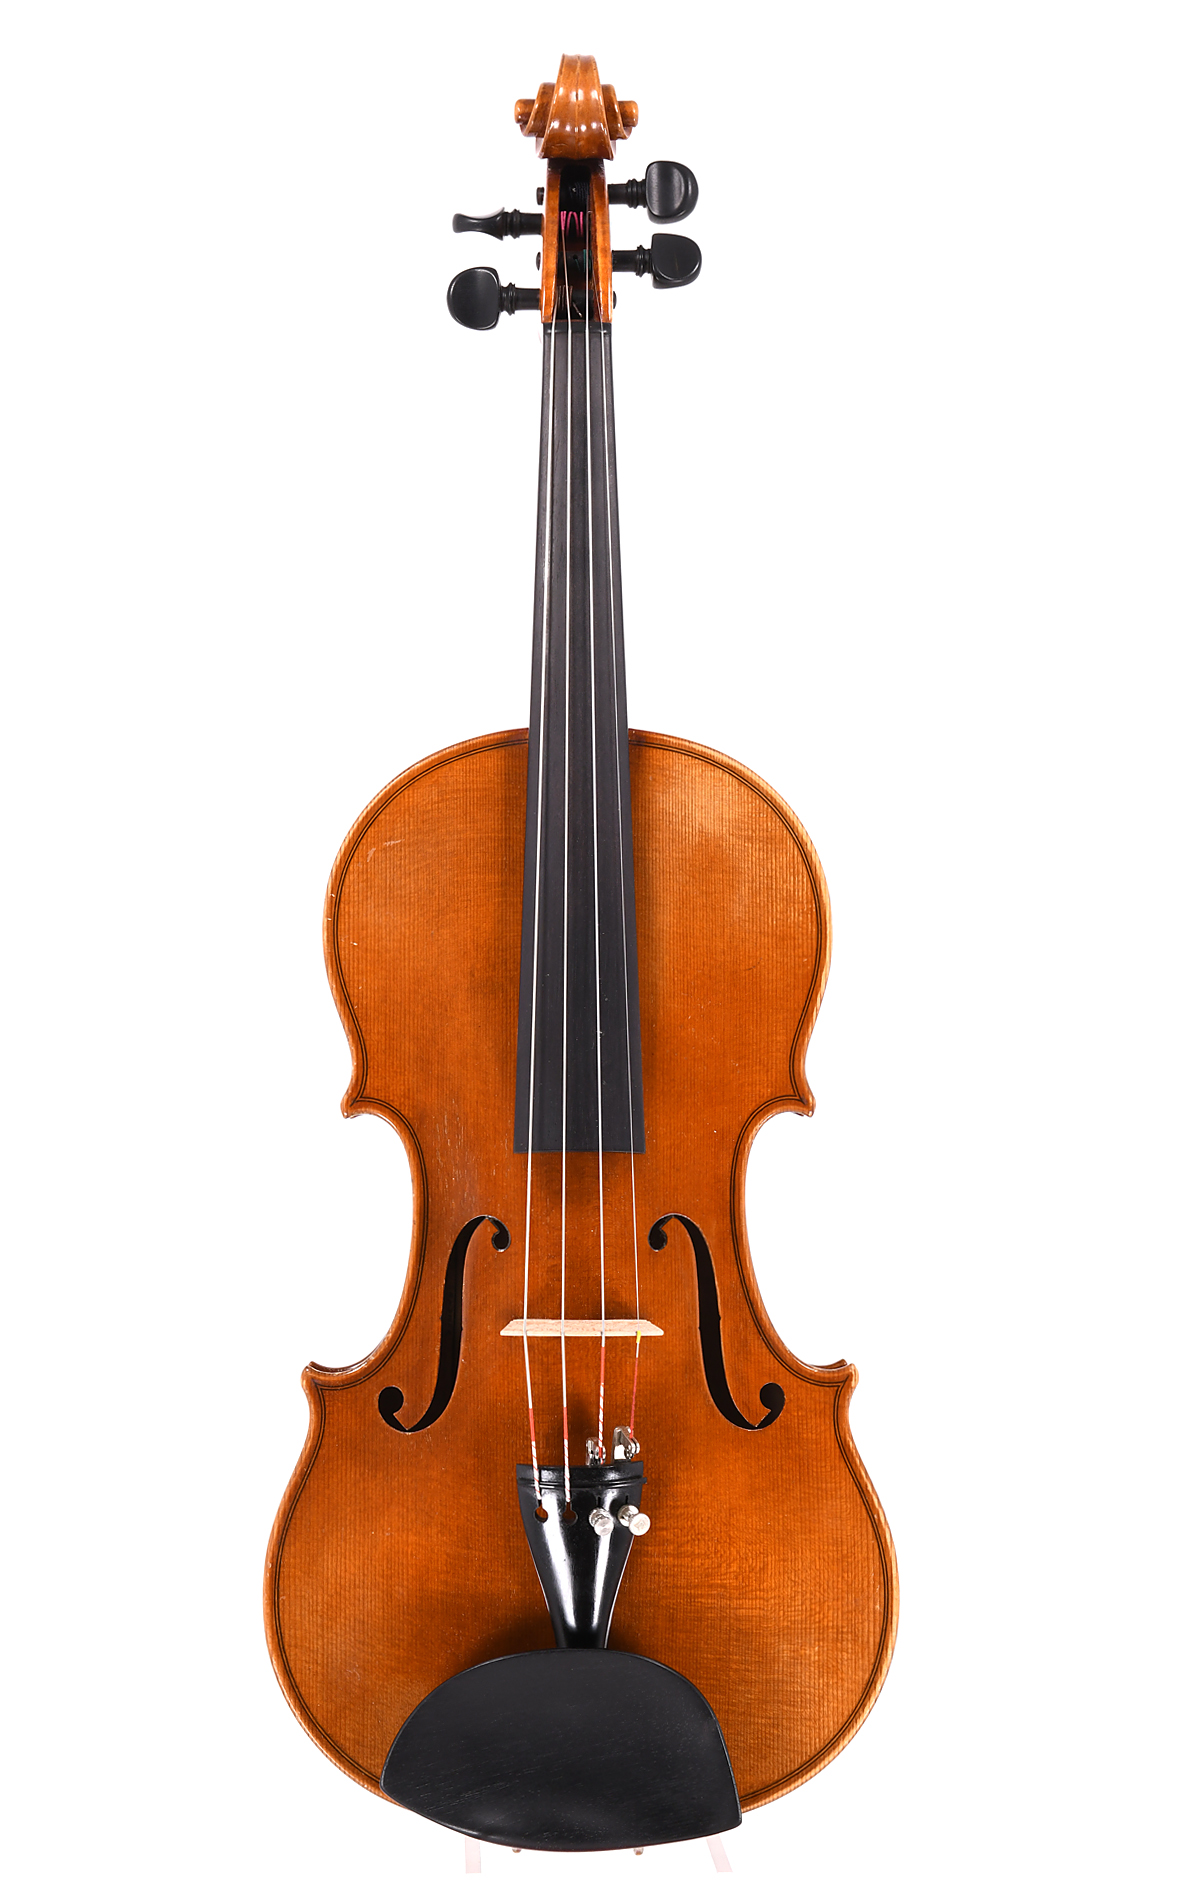 Mittenwald violin by Erich Sandner, successor of Johann Reiter